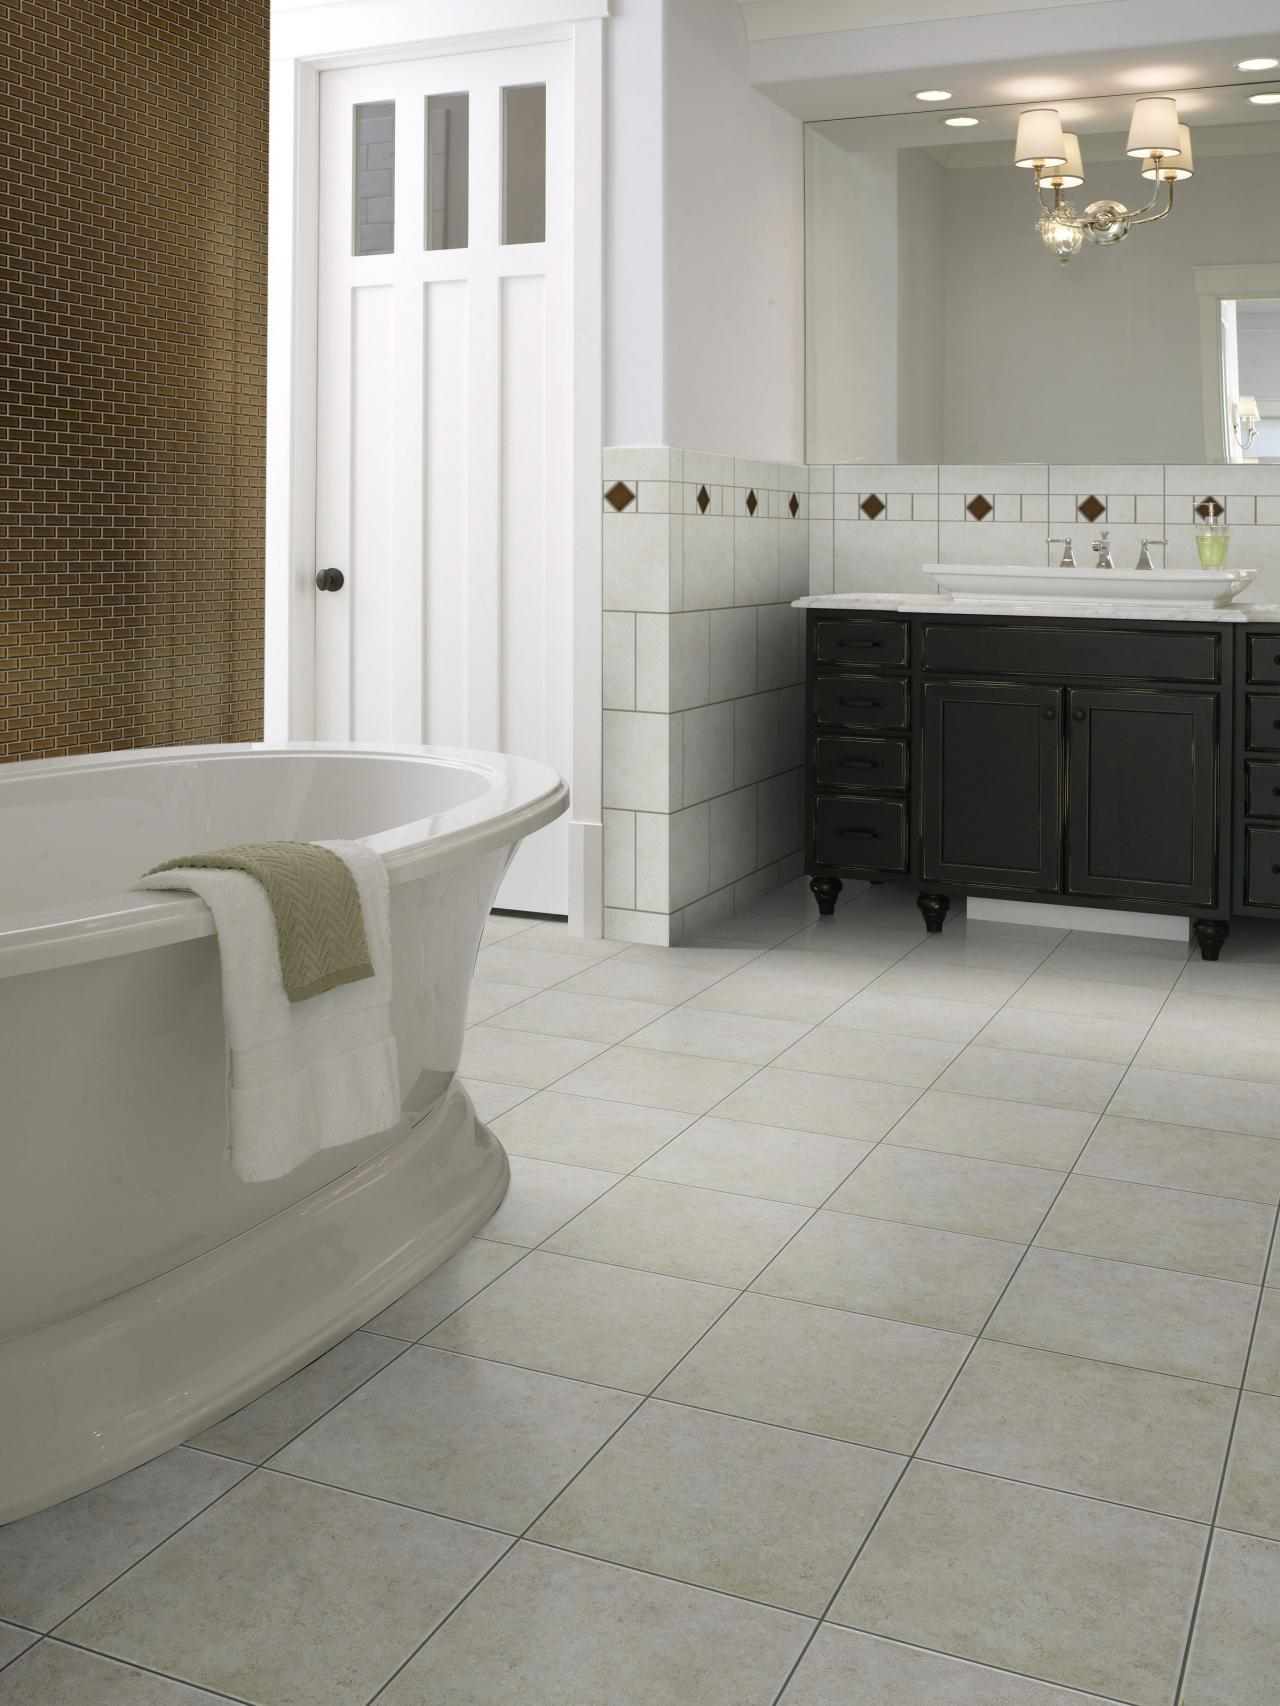 cheap vs steep bathroom tile - Bathroom Remodel Cheap